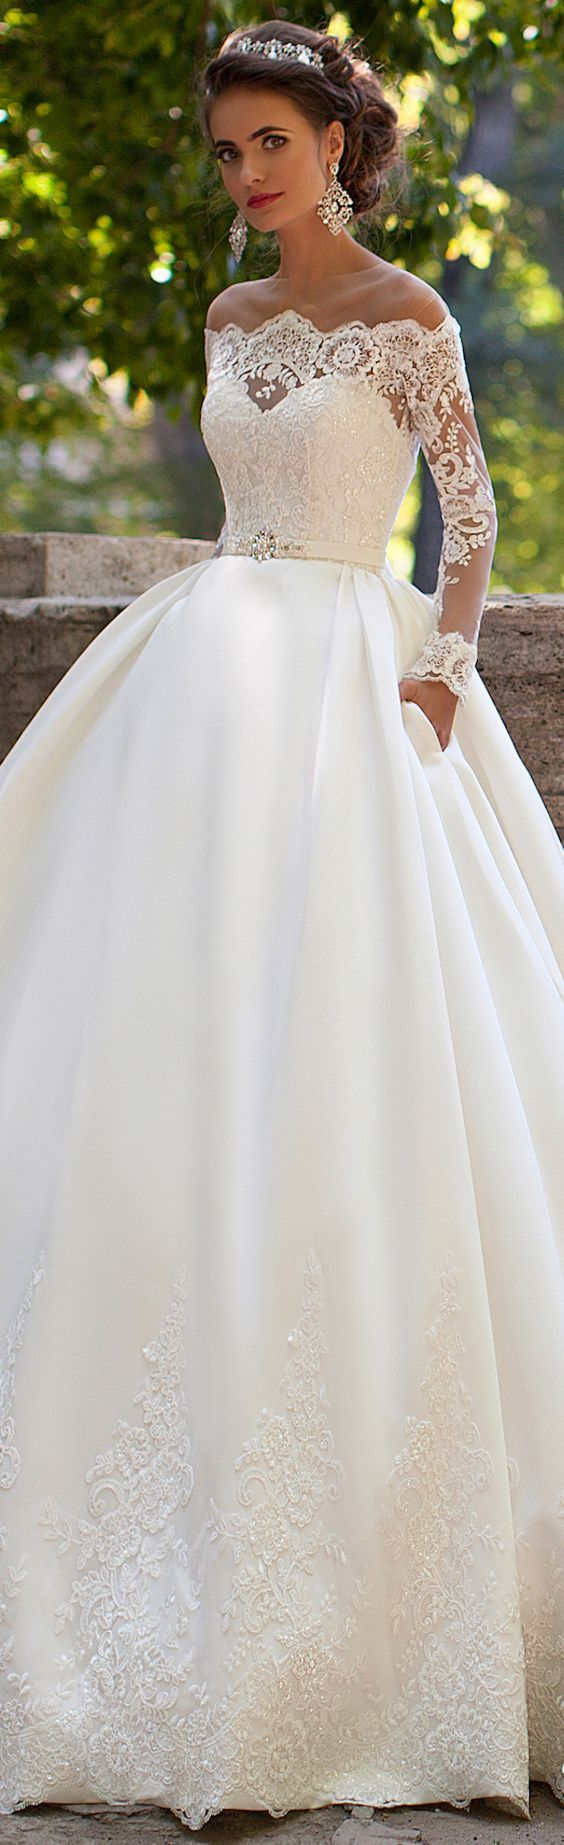 Milla Nova 2016 off shoulder long sleeves wedding dresses / http://www.himisspuff.com/long-sleeve-wedding-dresses/13/